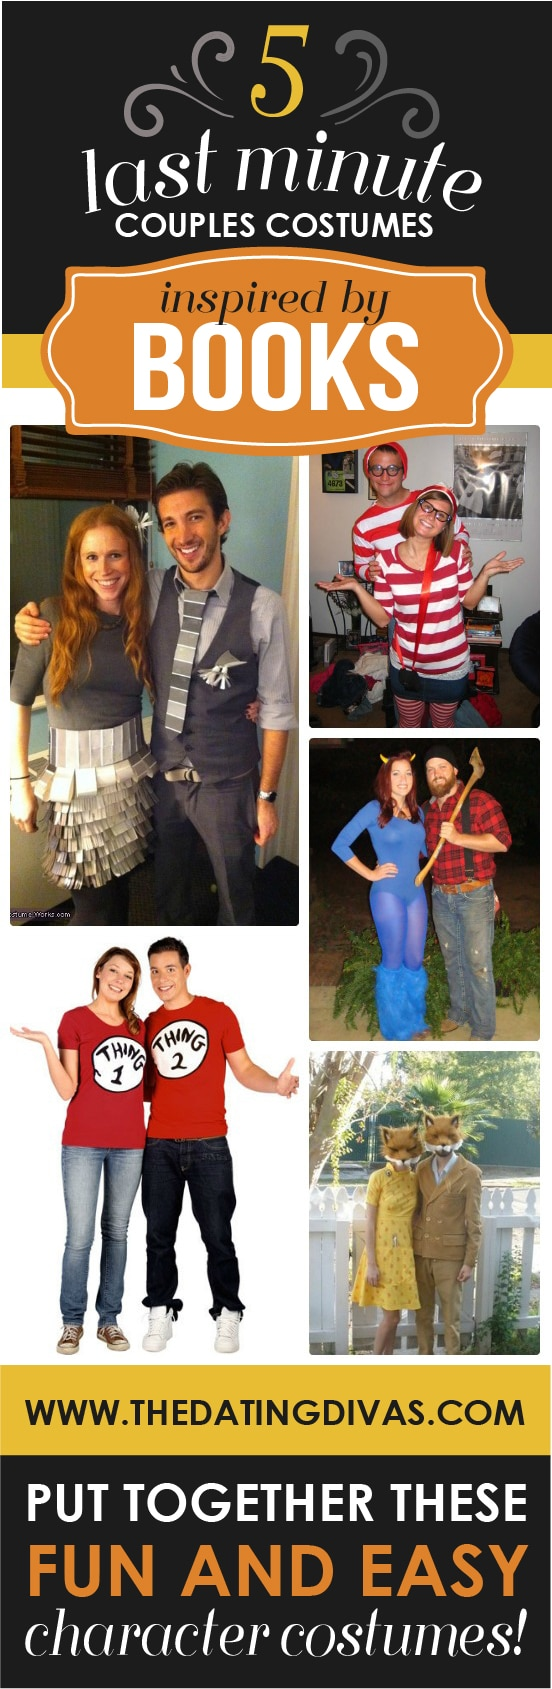 Last Minute Couples Costumes